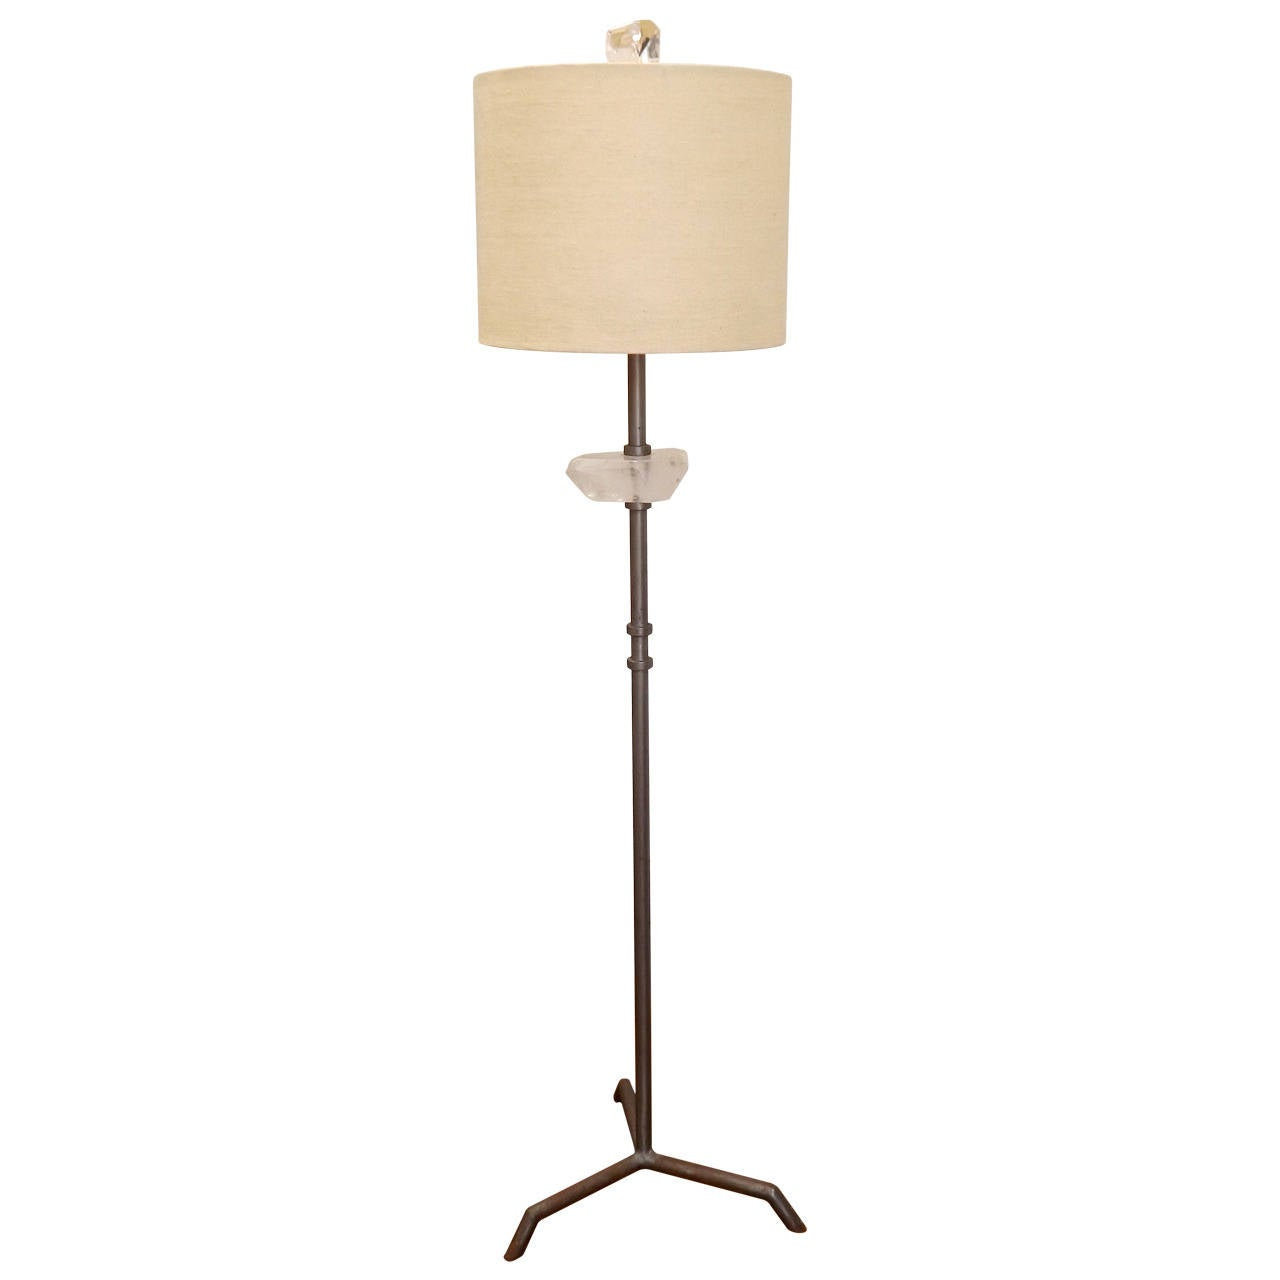 Marc du Plantier Floor Lamp